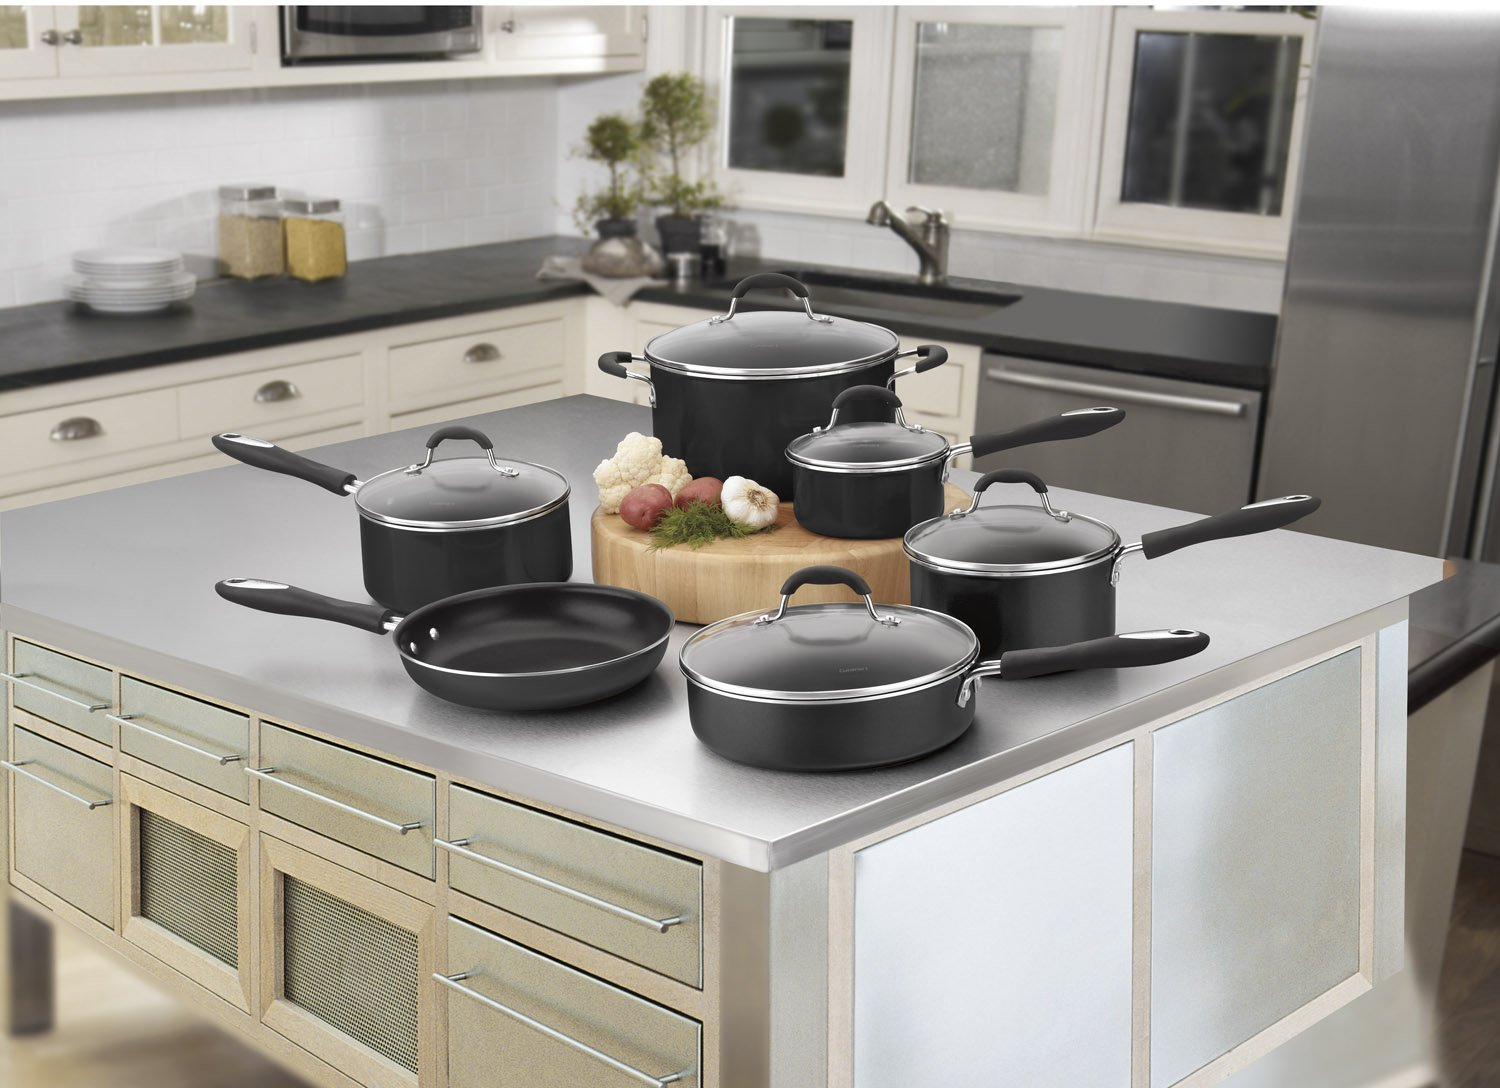 $99.99 (was $177.40) Cuisinart 55-11BK Advantage Nonstick 11-Piece Cookware Set, Black